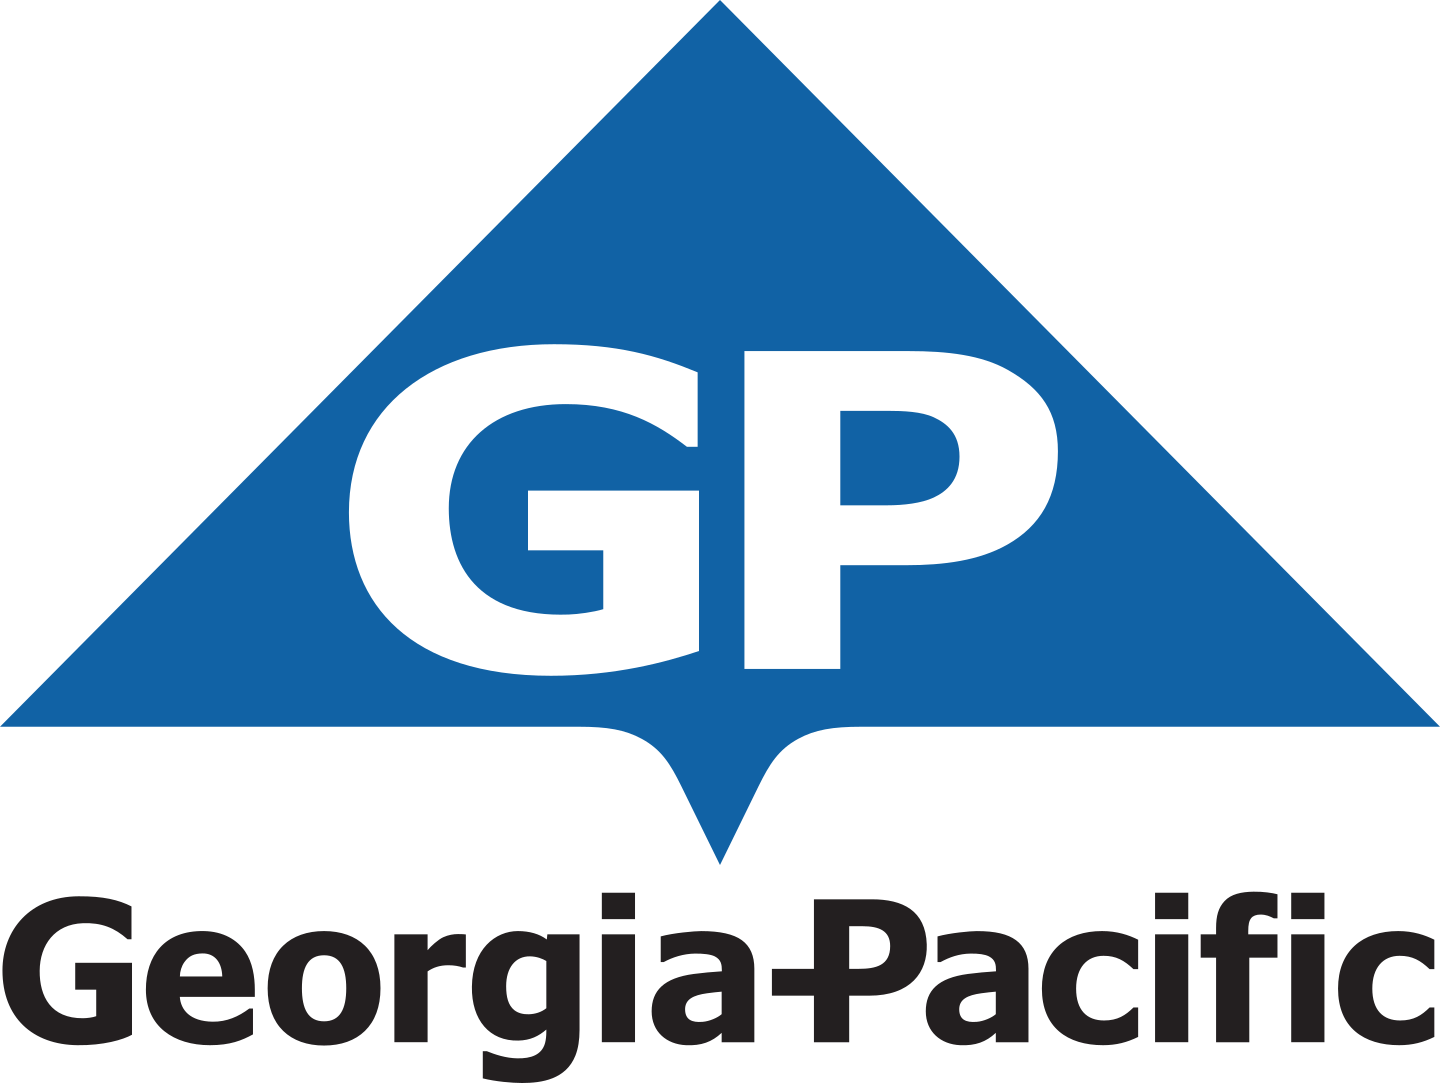 georgia pacific logo 3 - Georgia-Pacific Logo